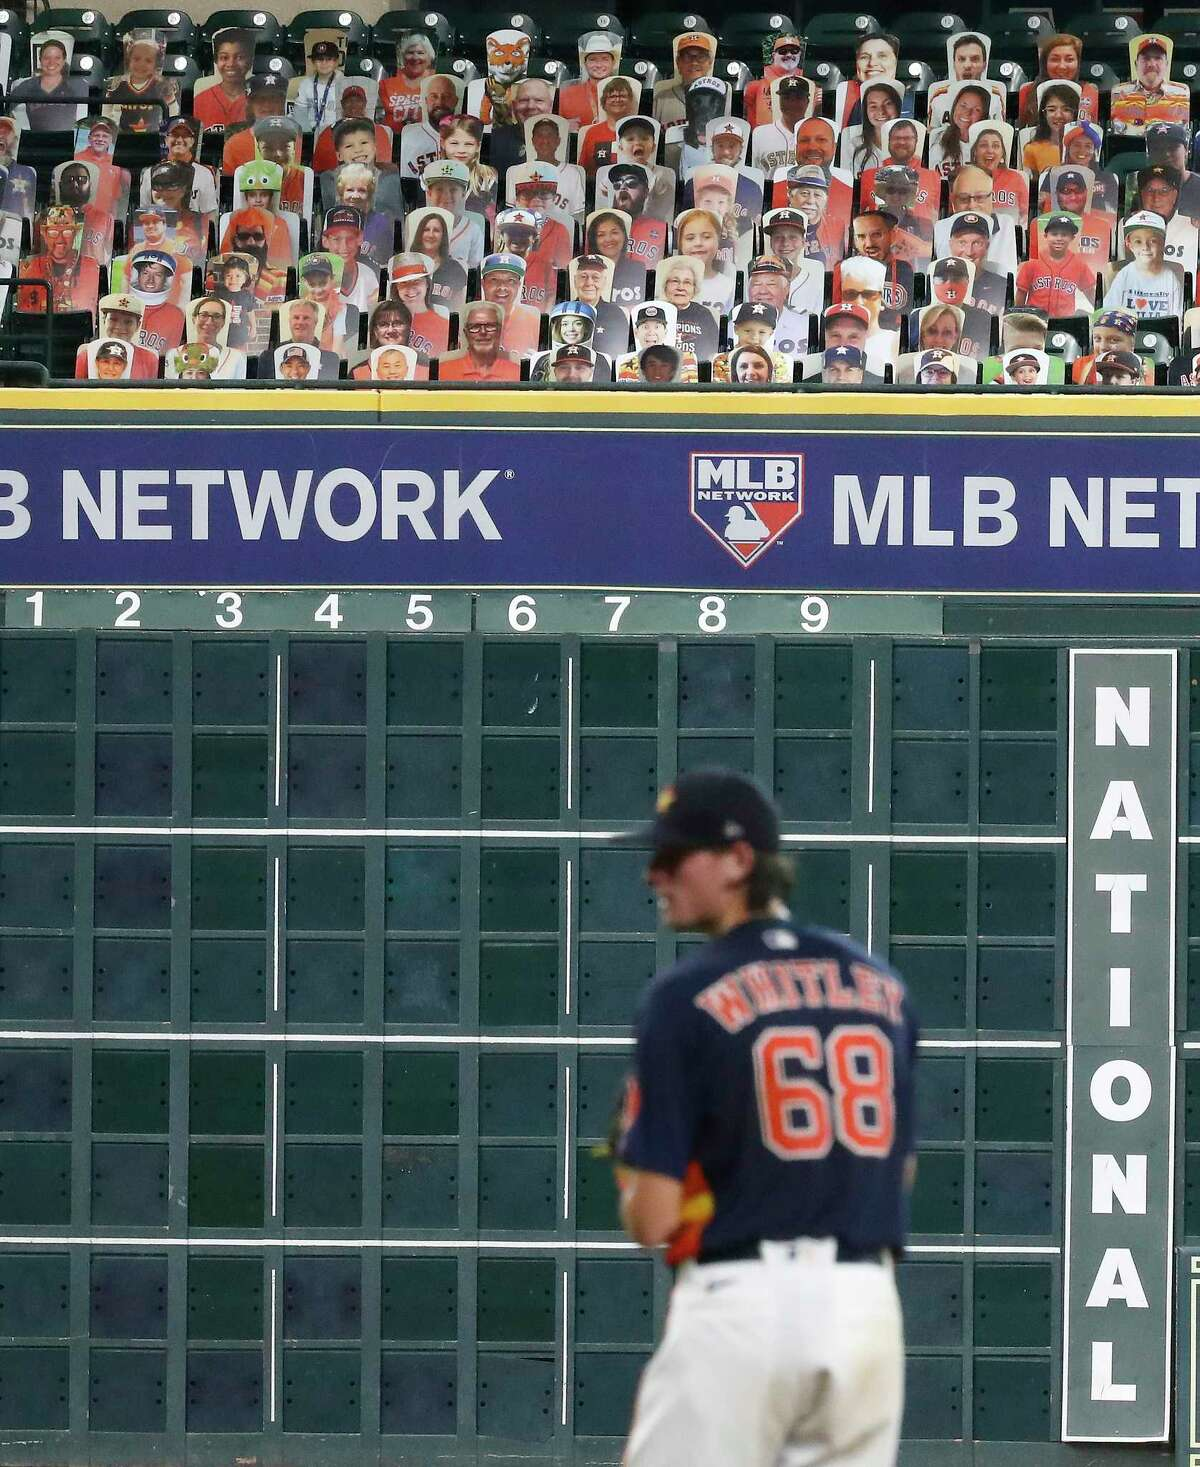 Houston Astros pitcher Forrest Whitley pitches with cardboard cutouts of fans in the Crawford Boxes behind him during an intrasquad game during the Astros summer camp at Minute Maid Park, Wednesday, July 22, 2020, in Houston.